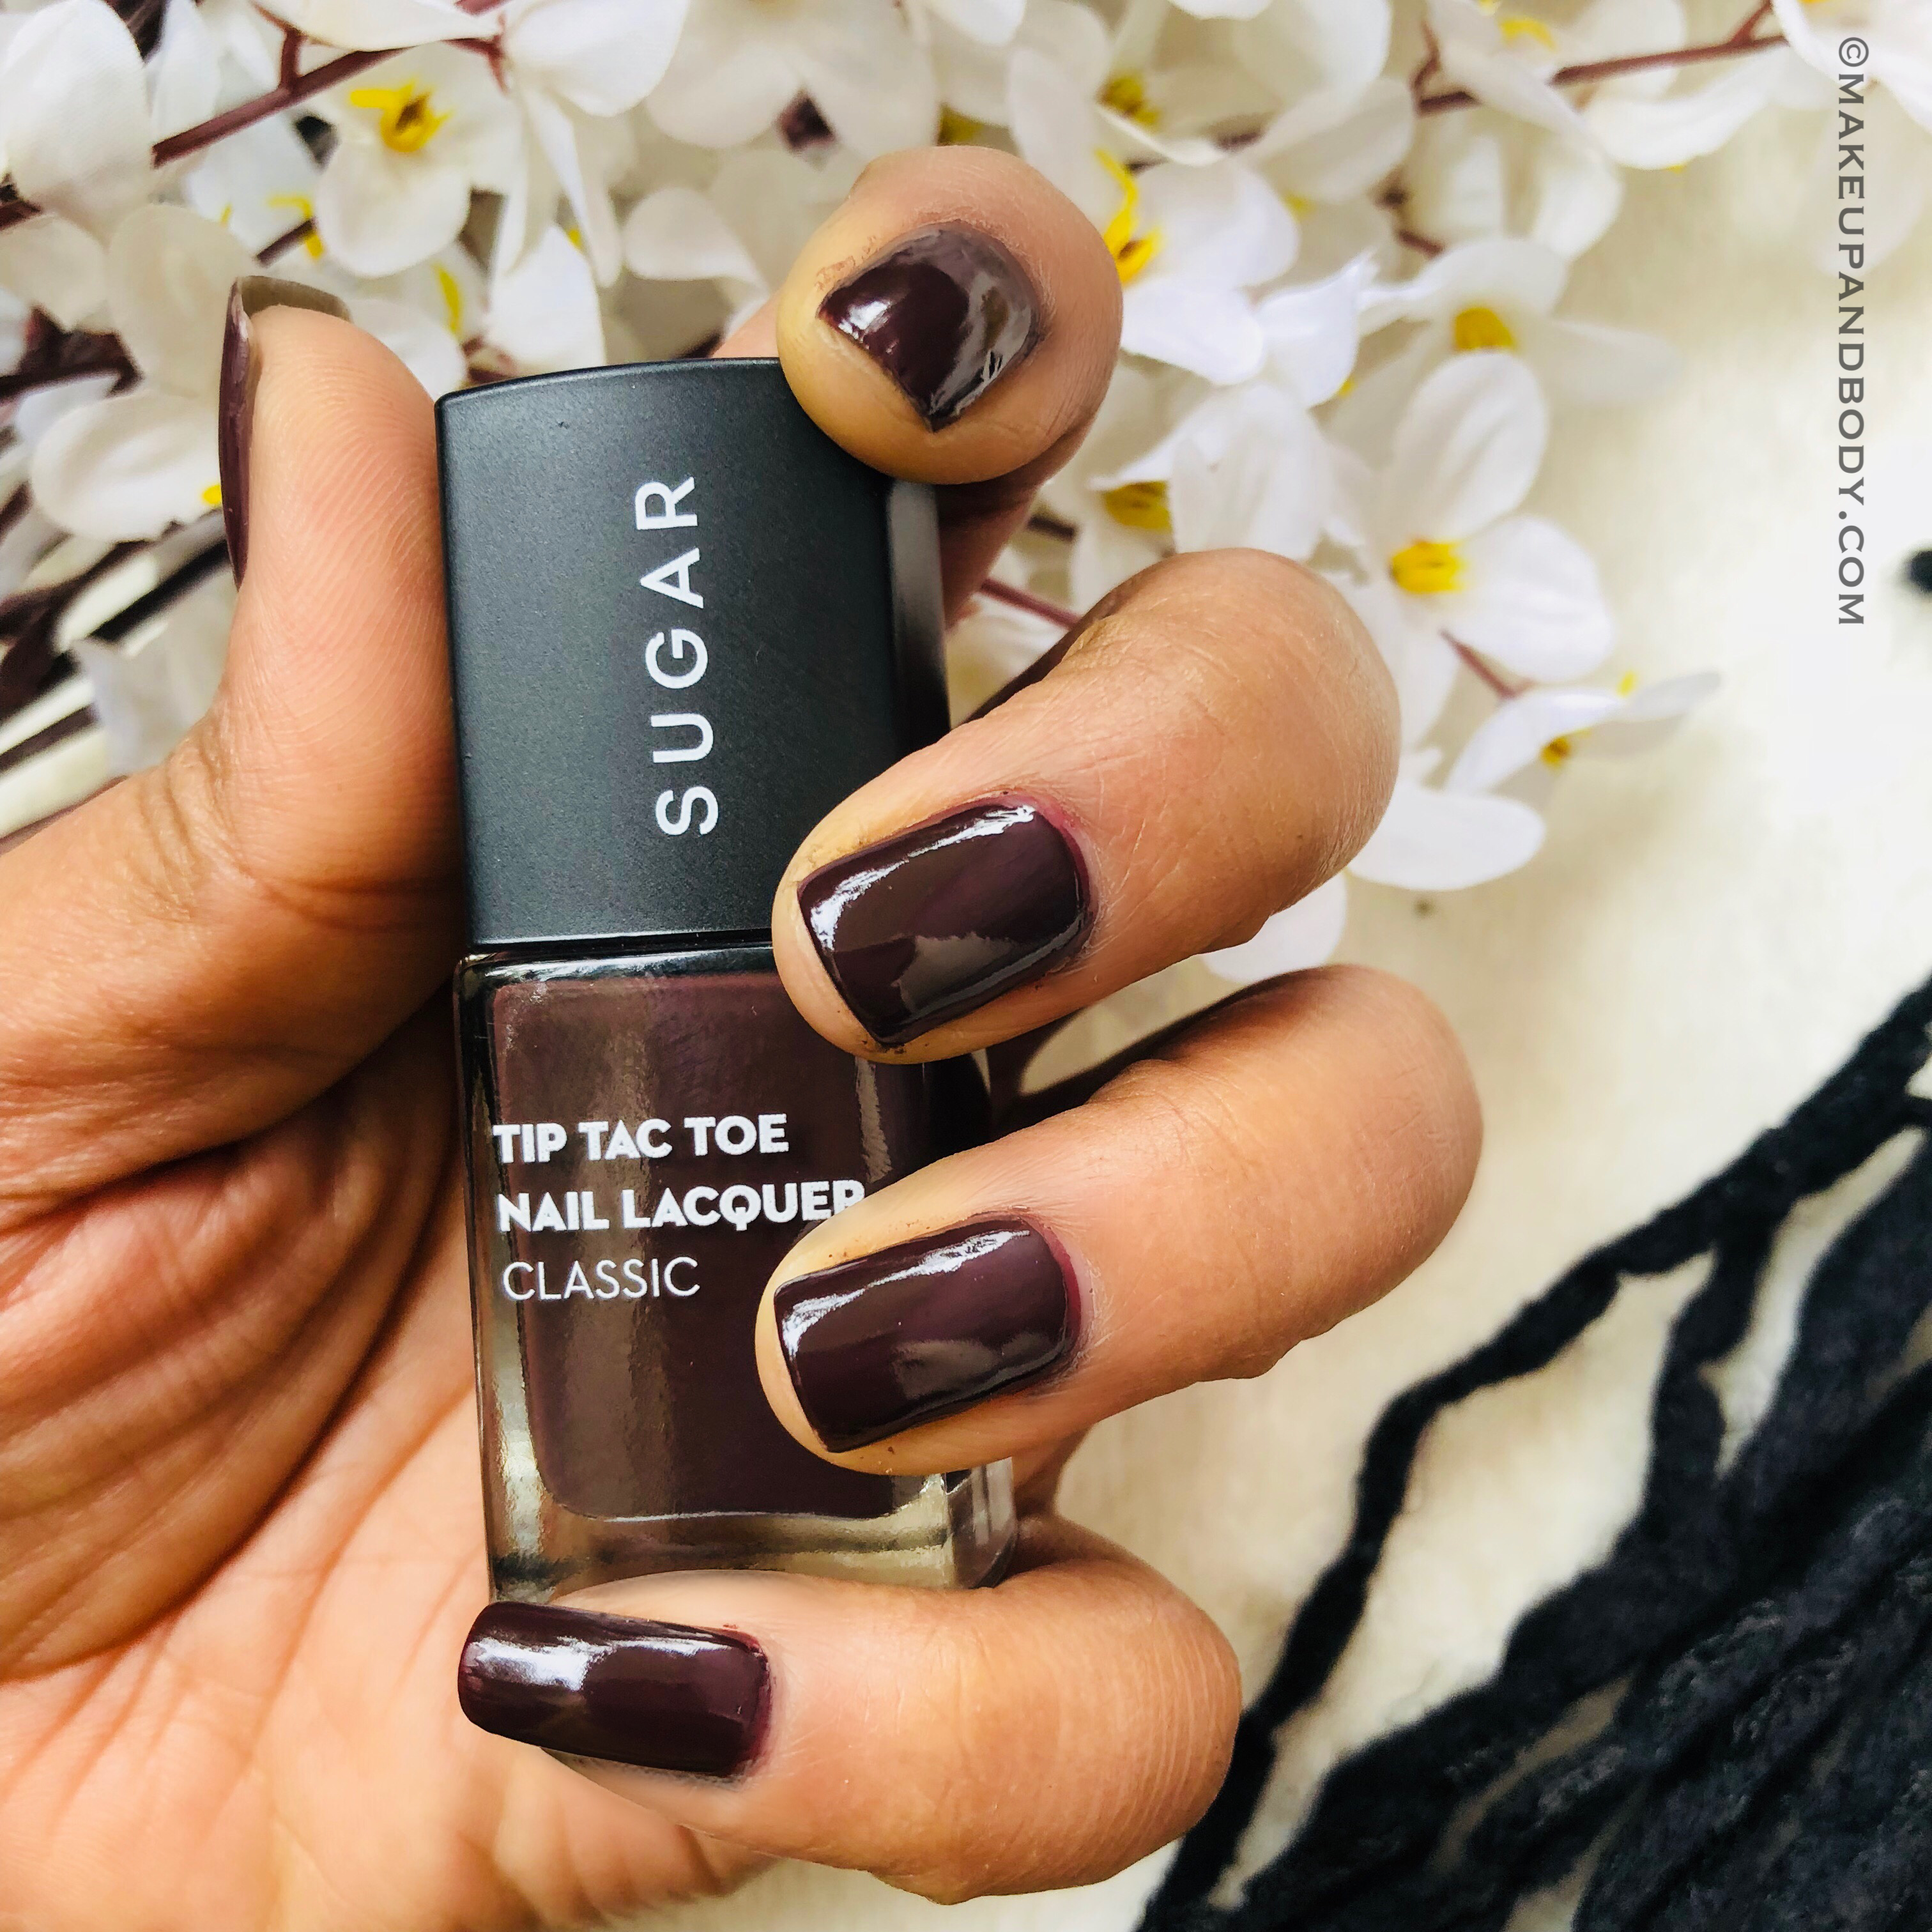 SUGAR Tip Tac Toe Nail Lacquer - 049 Toast Of The Town